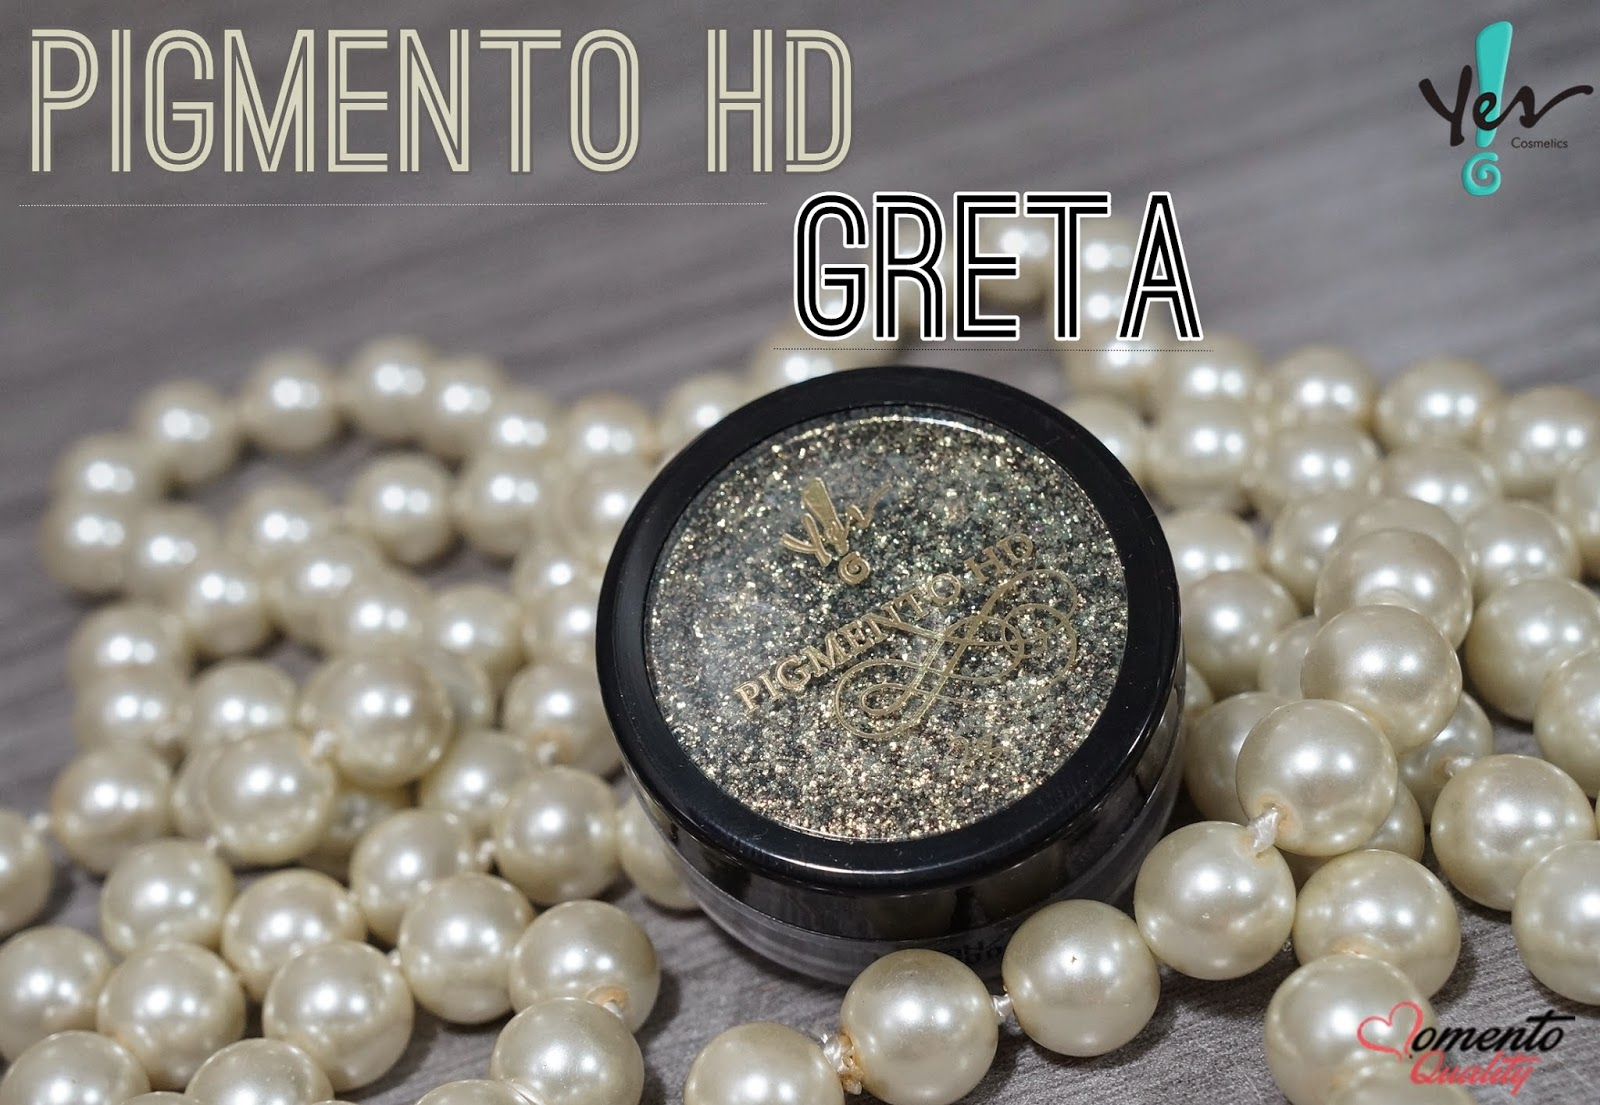 Pigmento HD Greta Yes Cosmetics